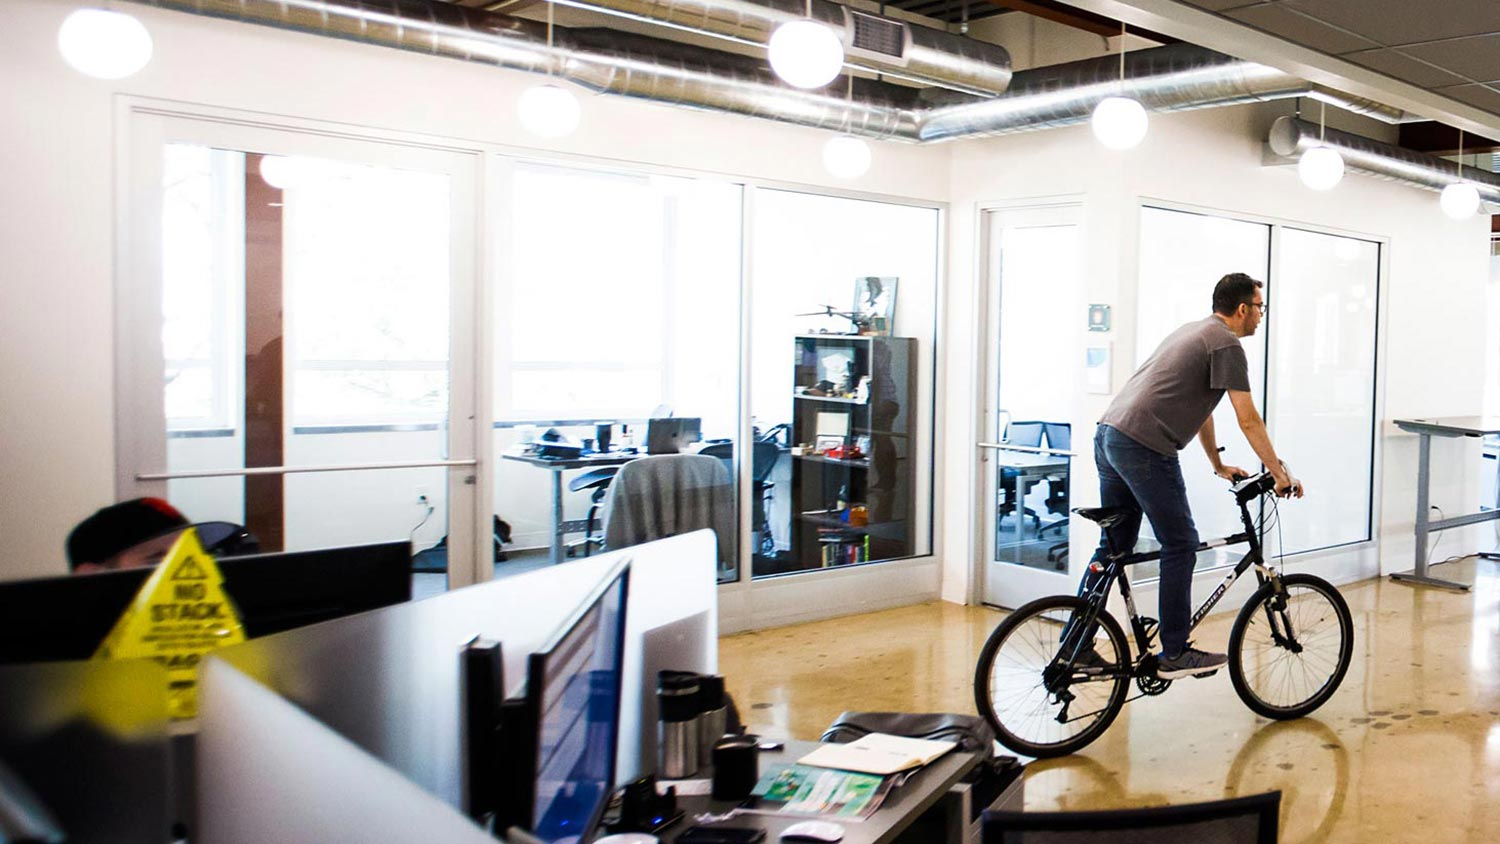 Bike Craig Bowes, director of Application Development, rides his bike through the office to his desk at Simpli.fi offices on Wednesday, Sept. 6, 2017, in Fort Worth. (Smiley N. Pool/The Dallas Morning News)